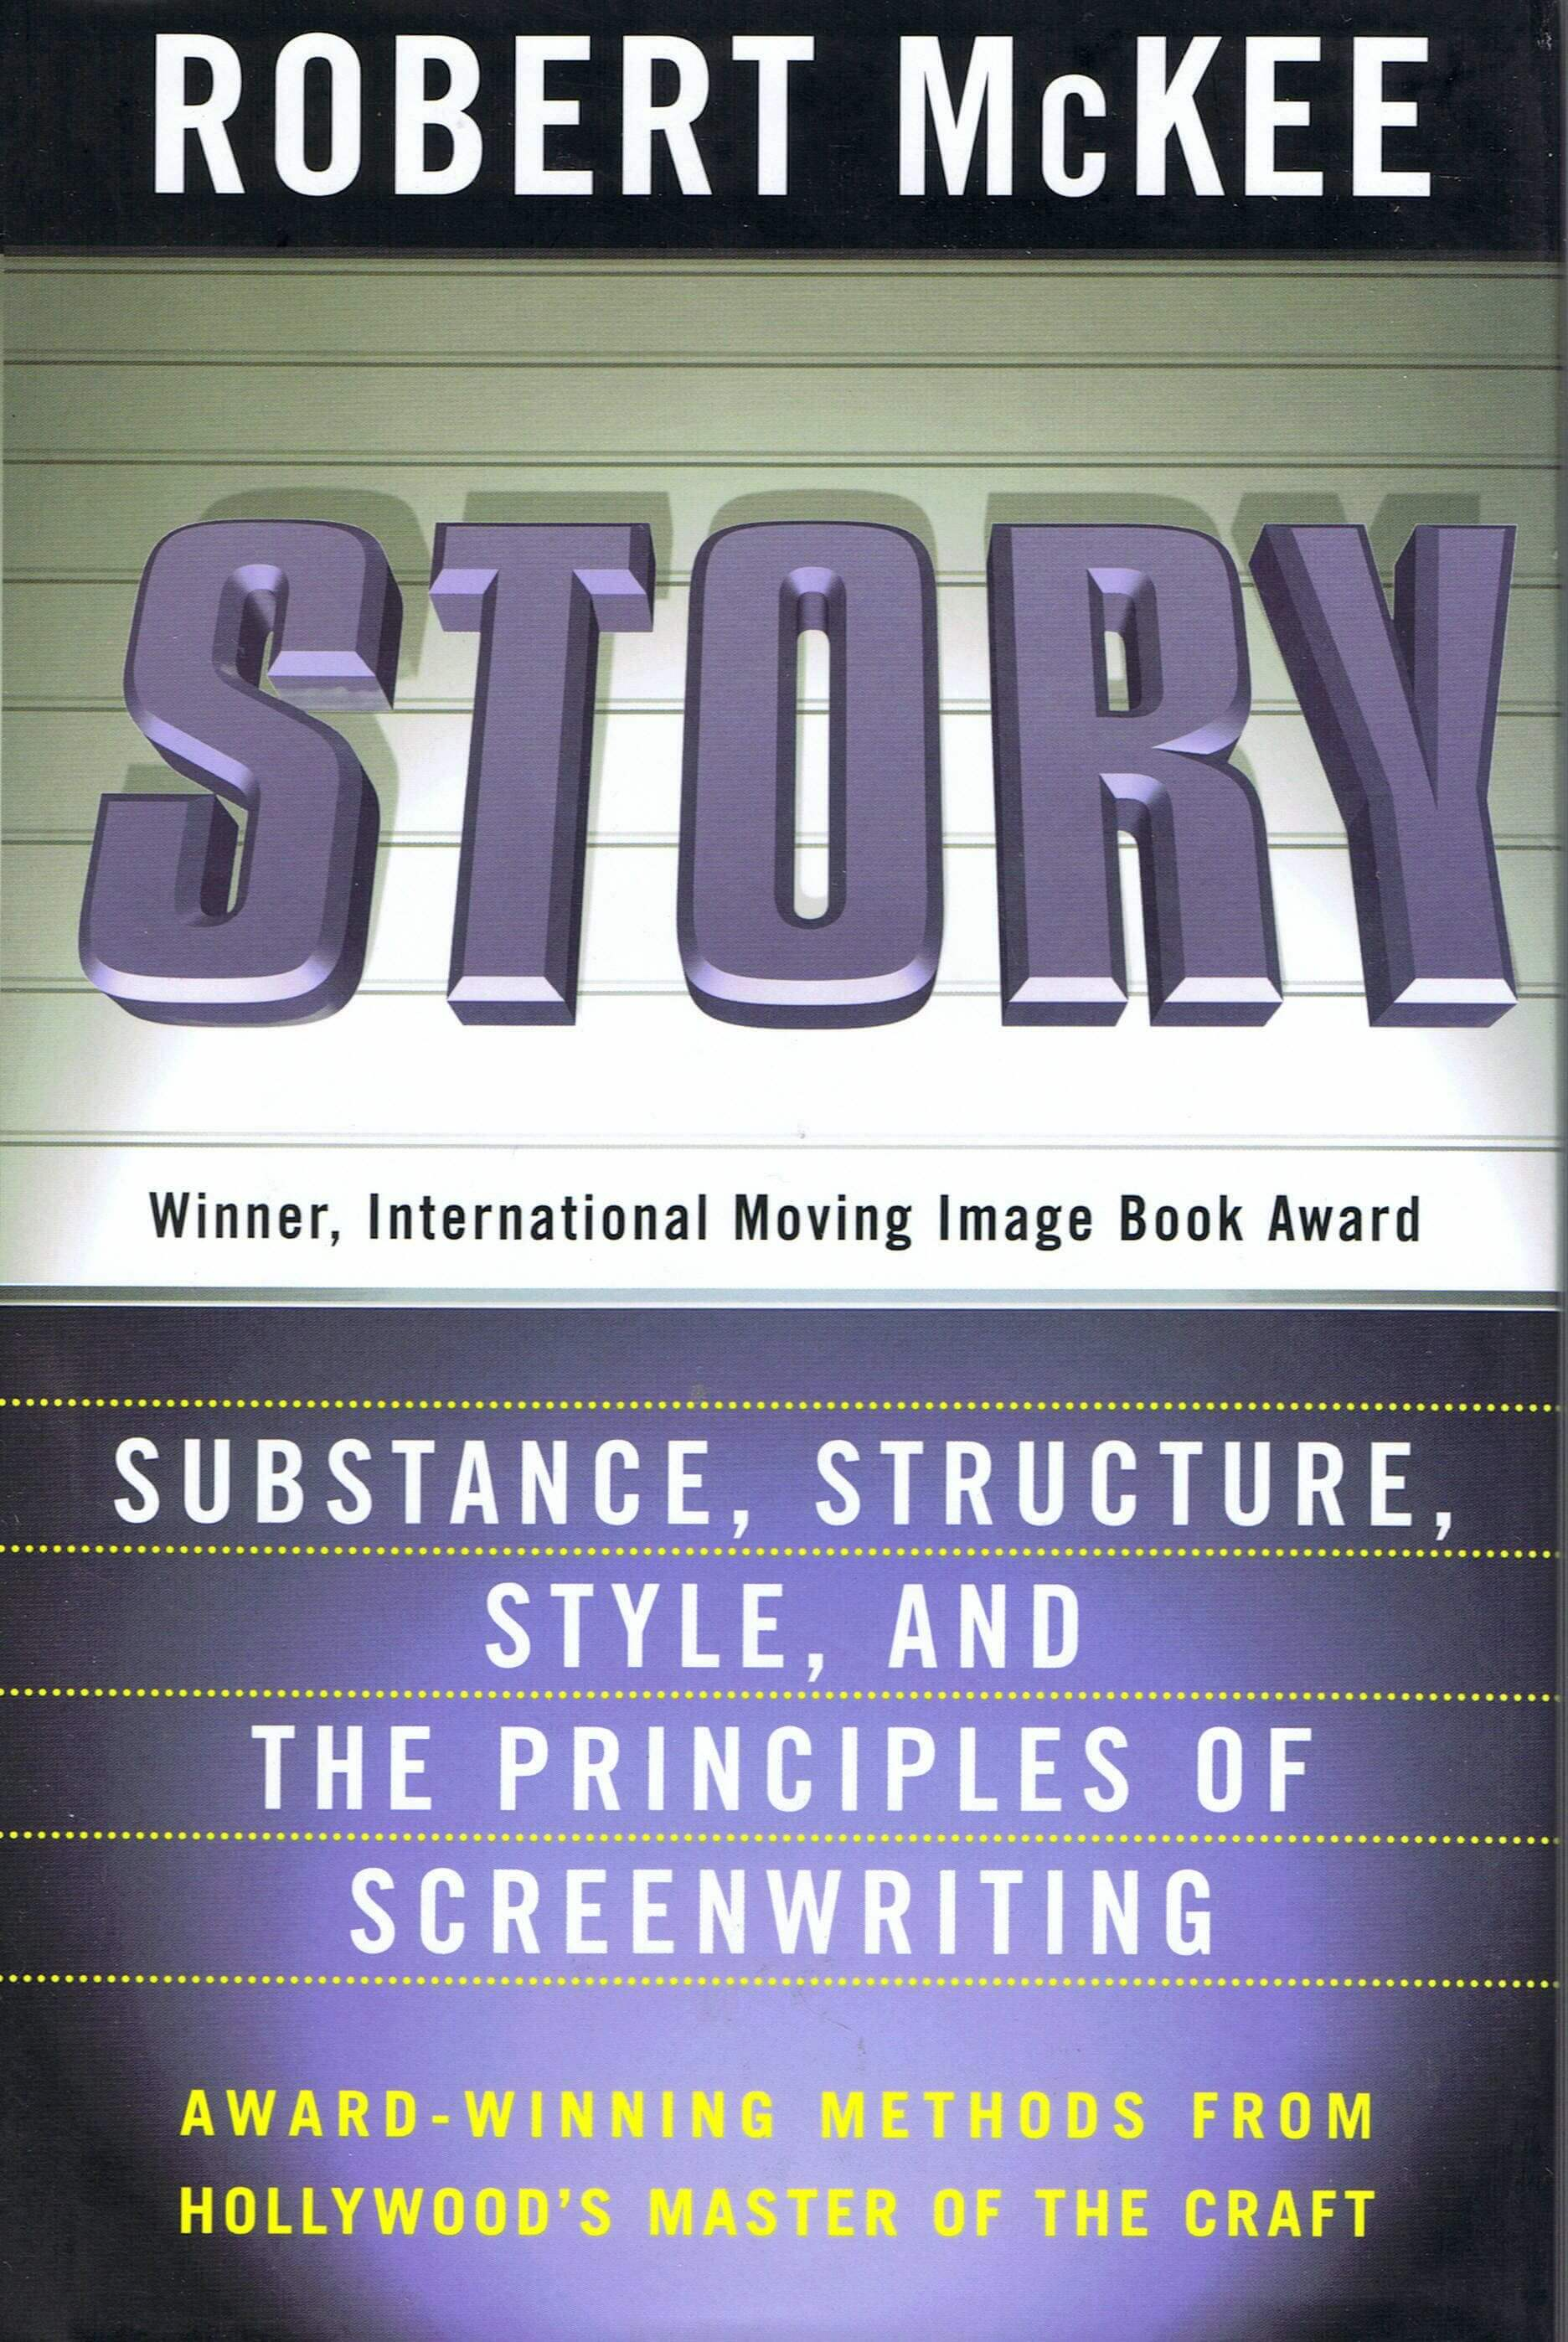 The Best Screenwriting Books for Screenwriters - Story by Robert McKee-min